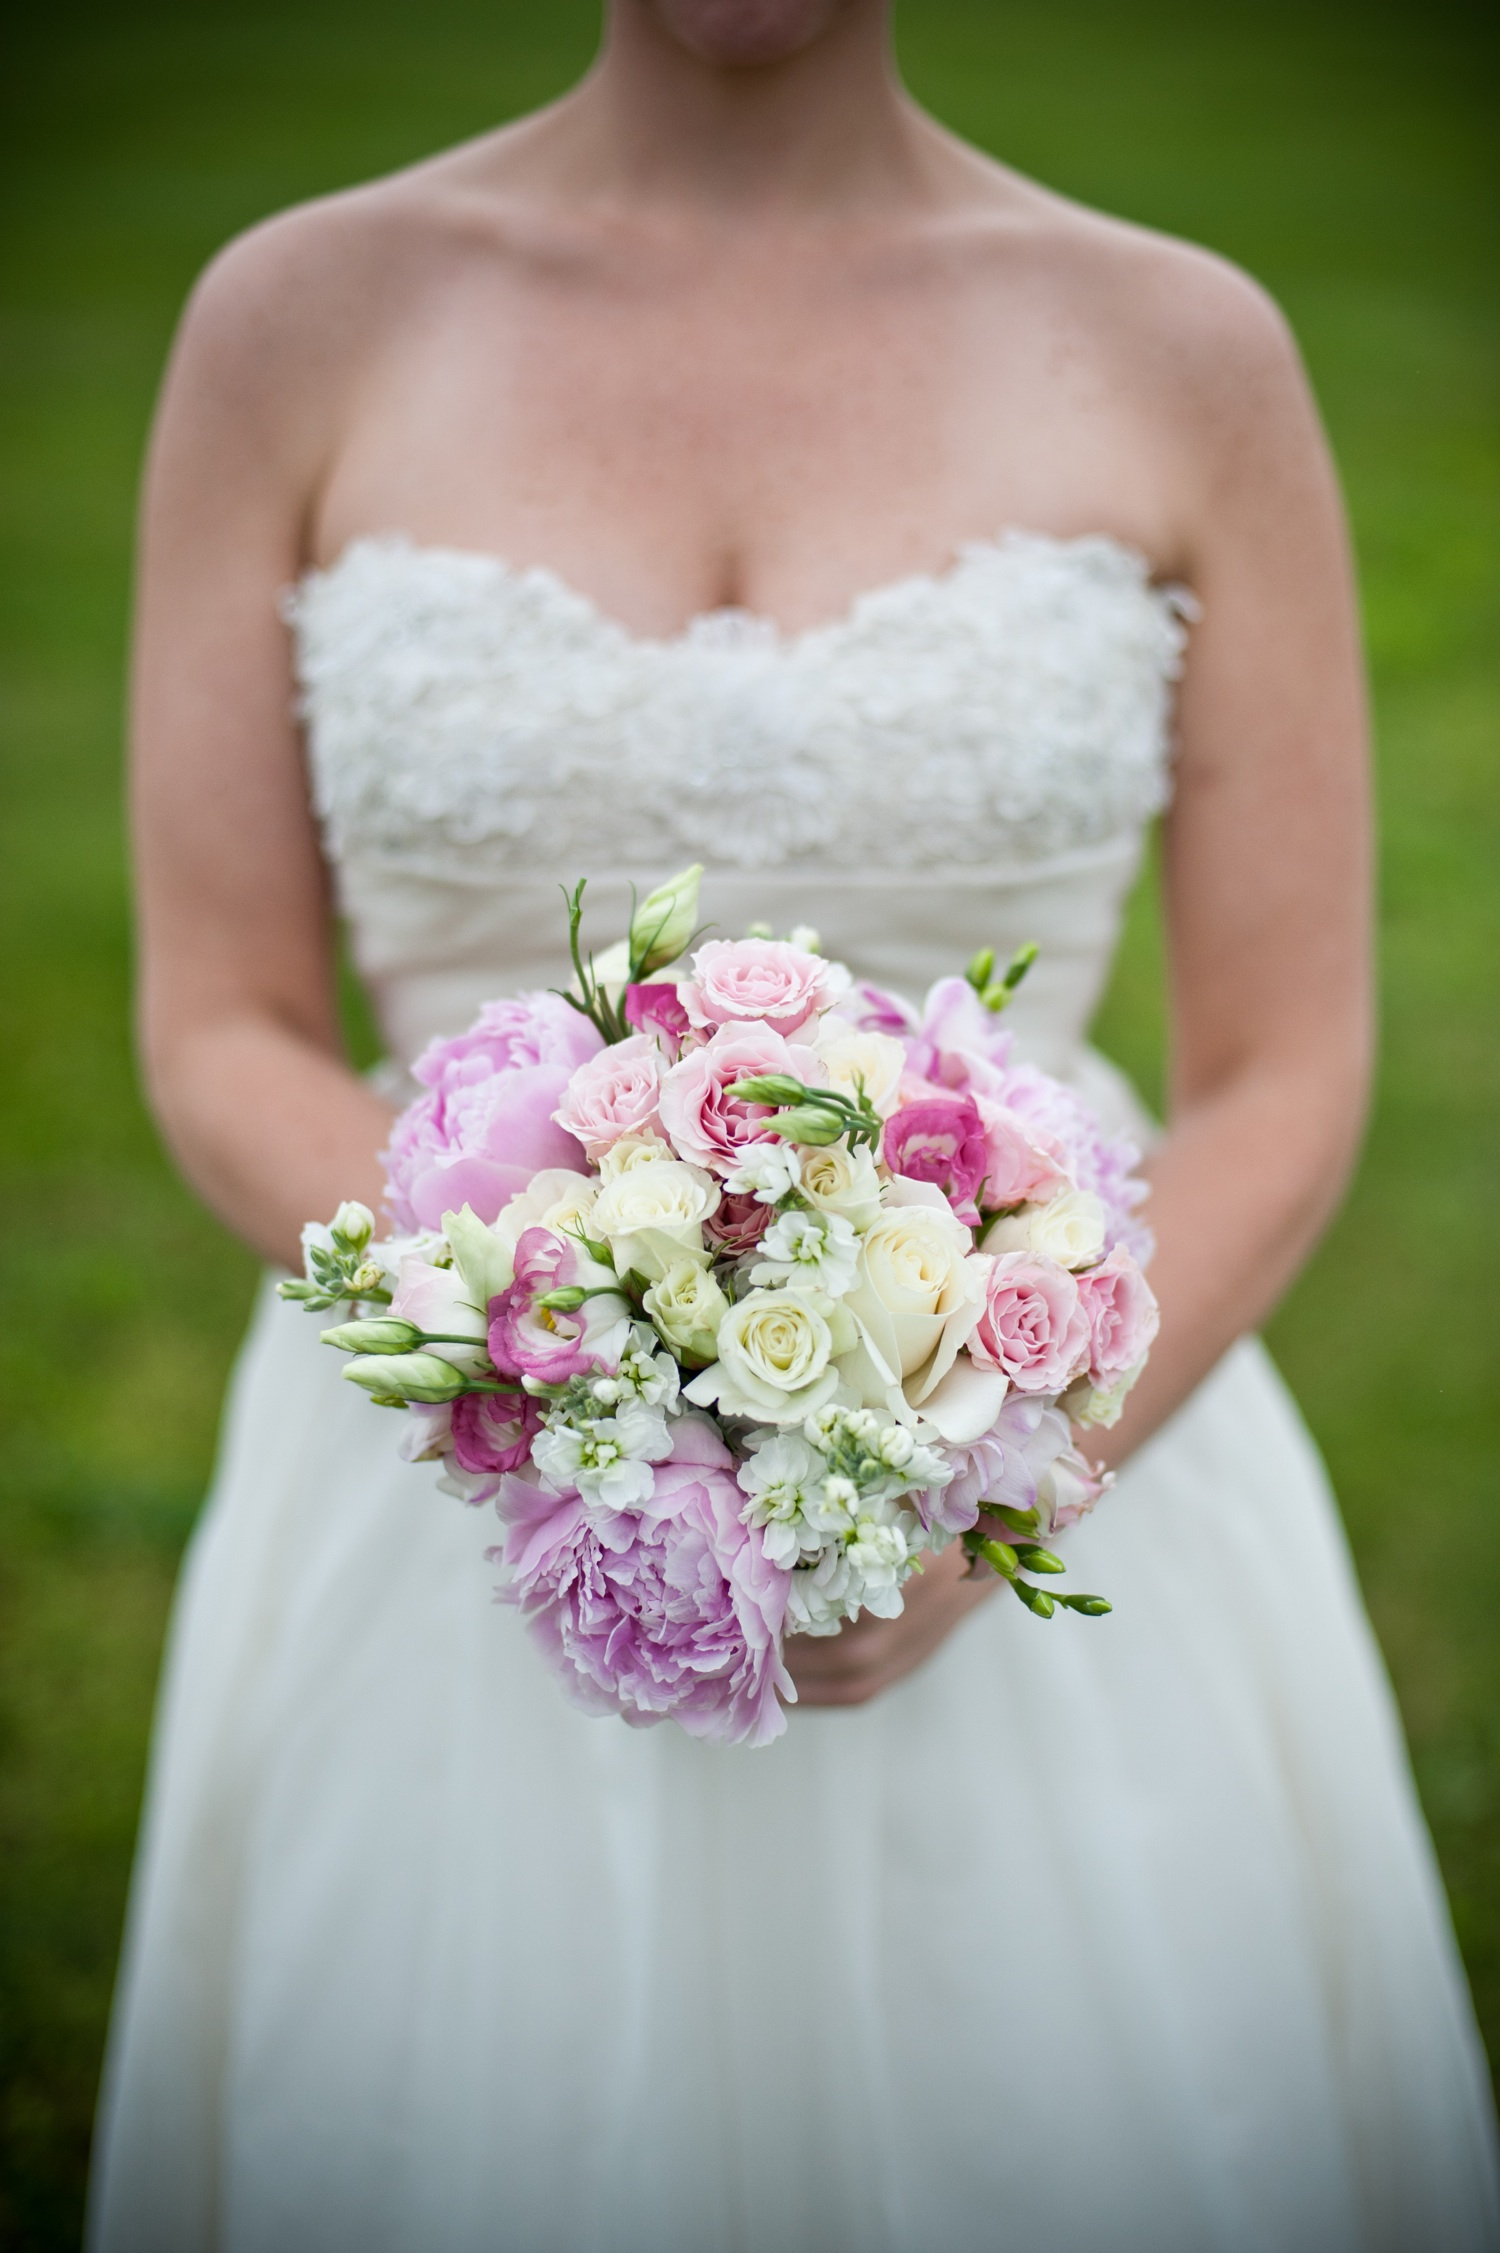 Romantic-bridal-bouquet-real-weddings-outdoor.original